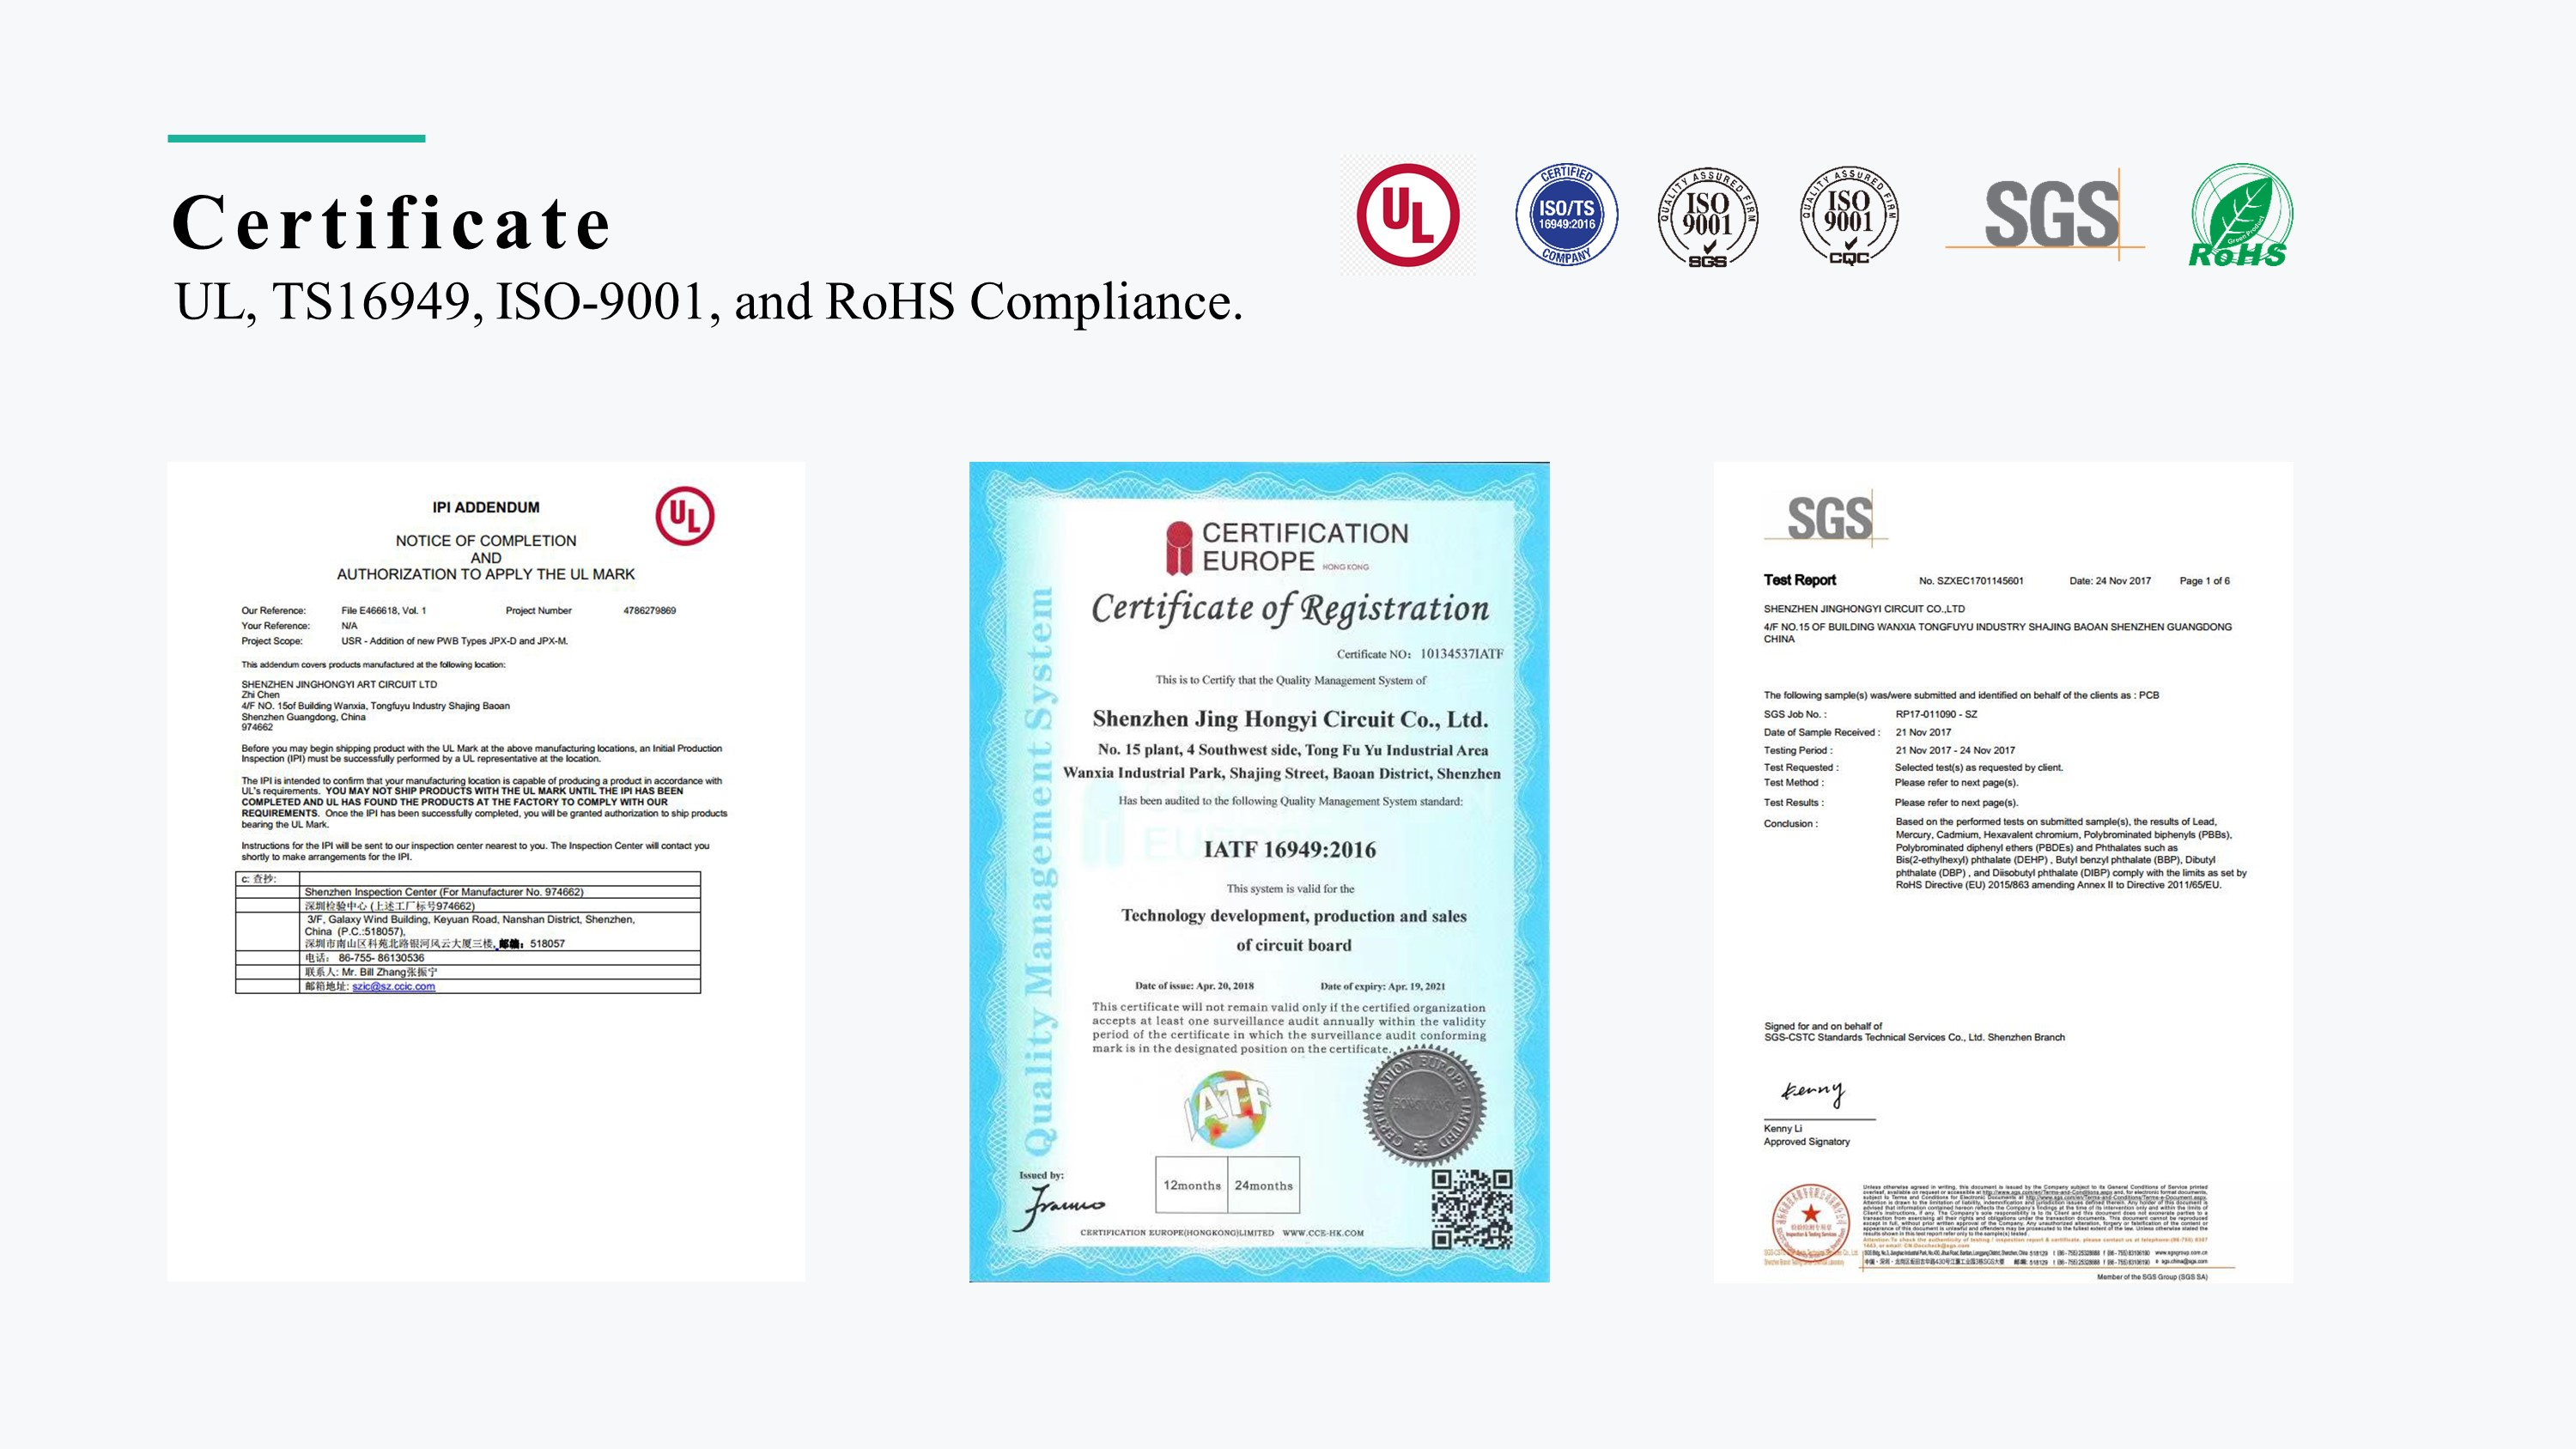 UL, TS16949, ISO-9001, and RoHS Compliance.